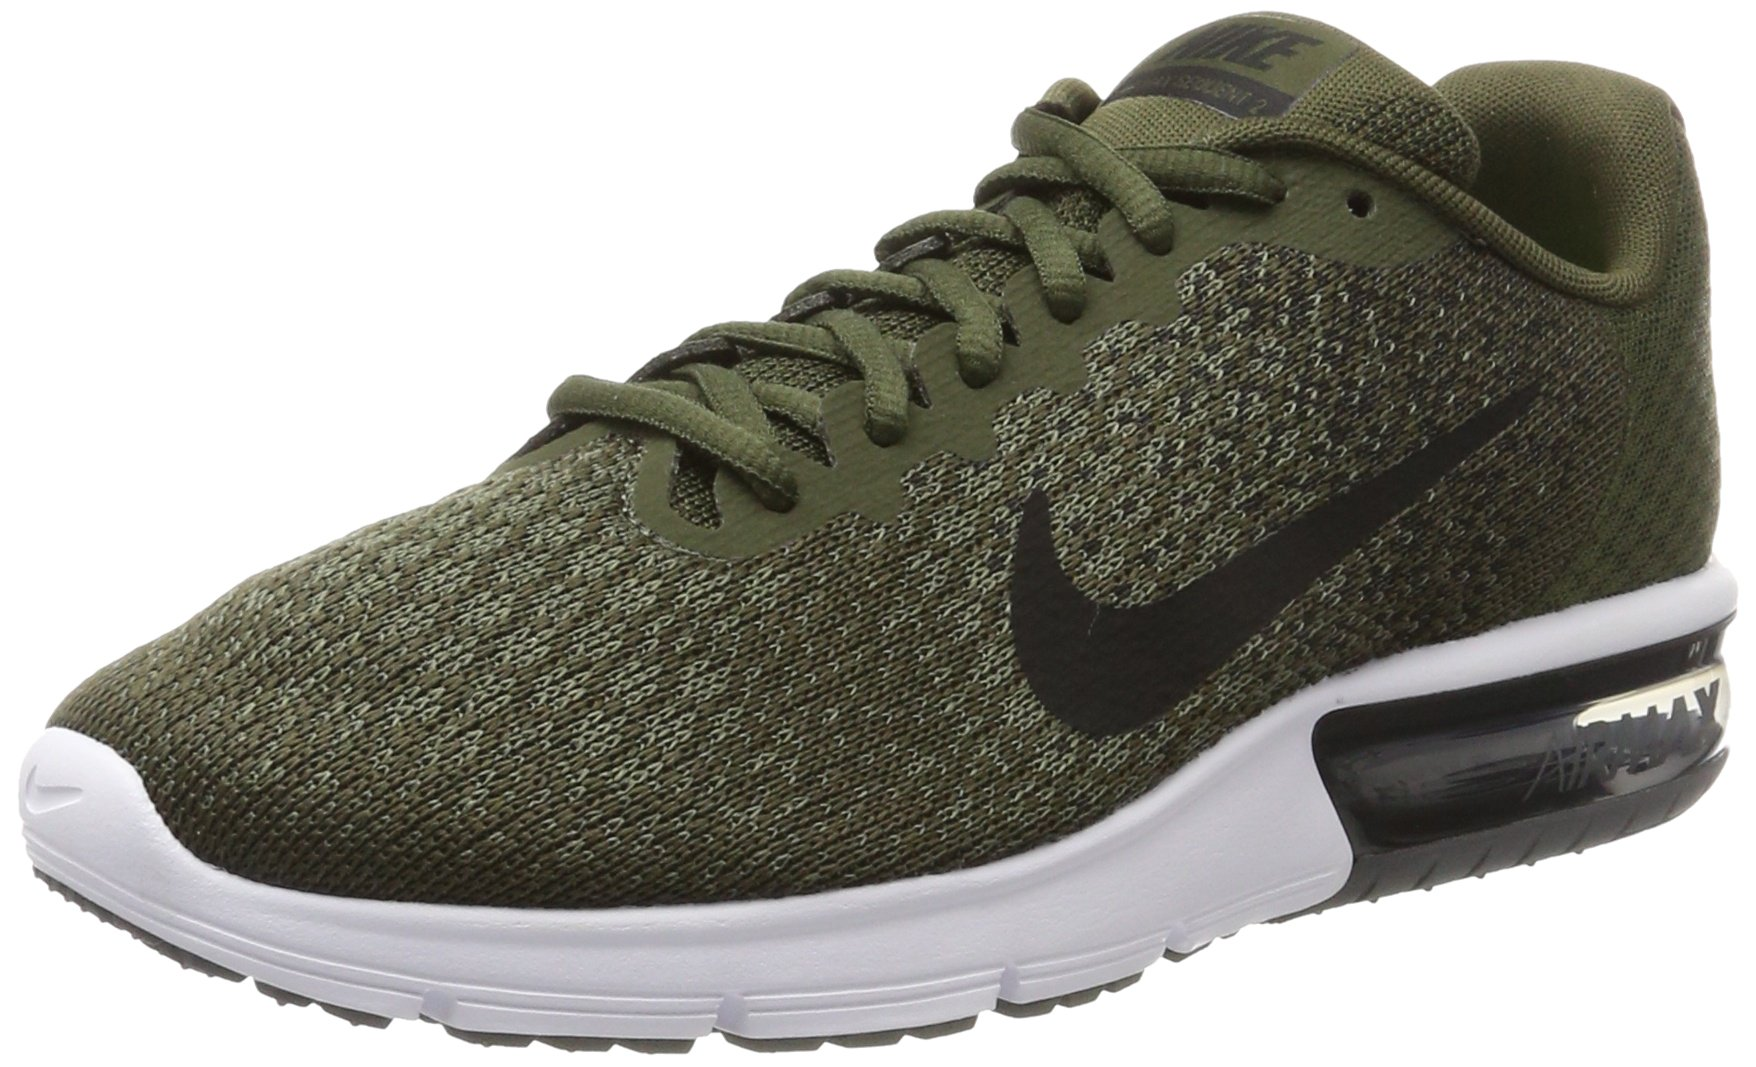 outlet store aaec5 259f8 Galleon - Men s Nike Air Max Sequent 2 Running Shoe Size 11.5 D (M) US